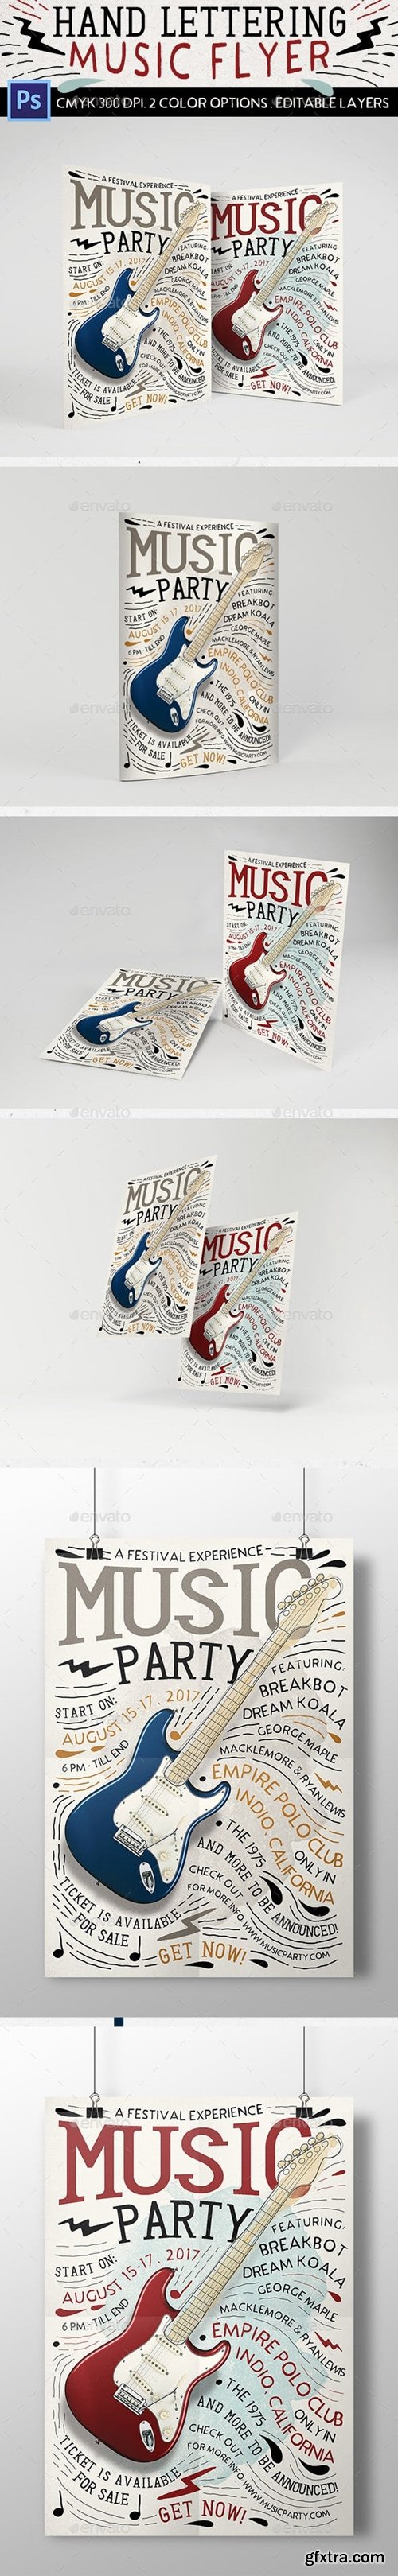 Graphicriver - Hand Lettering Music Flyer 15929923